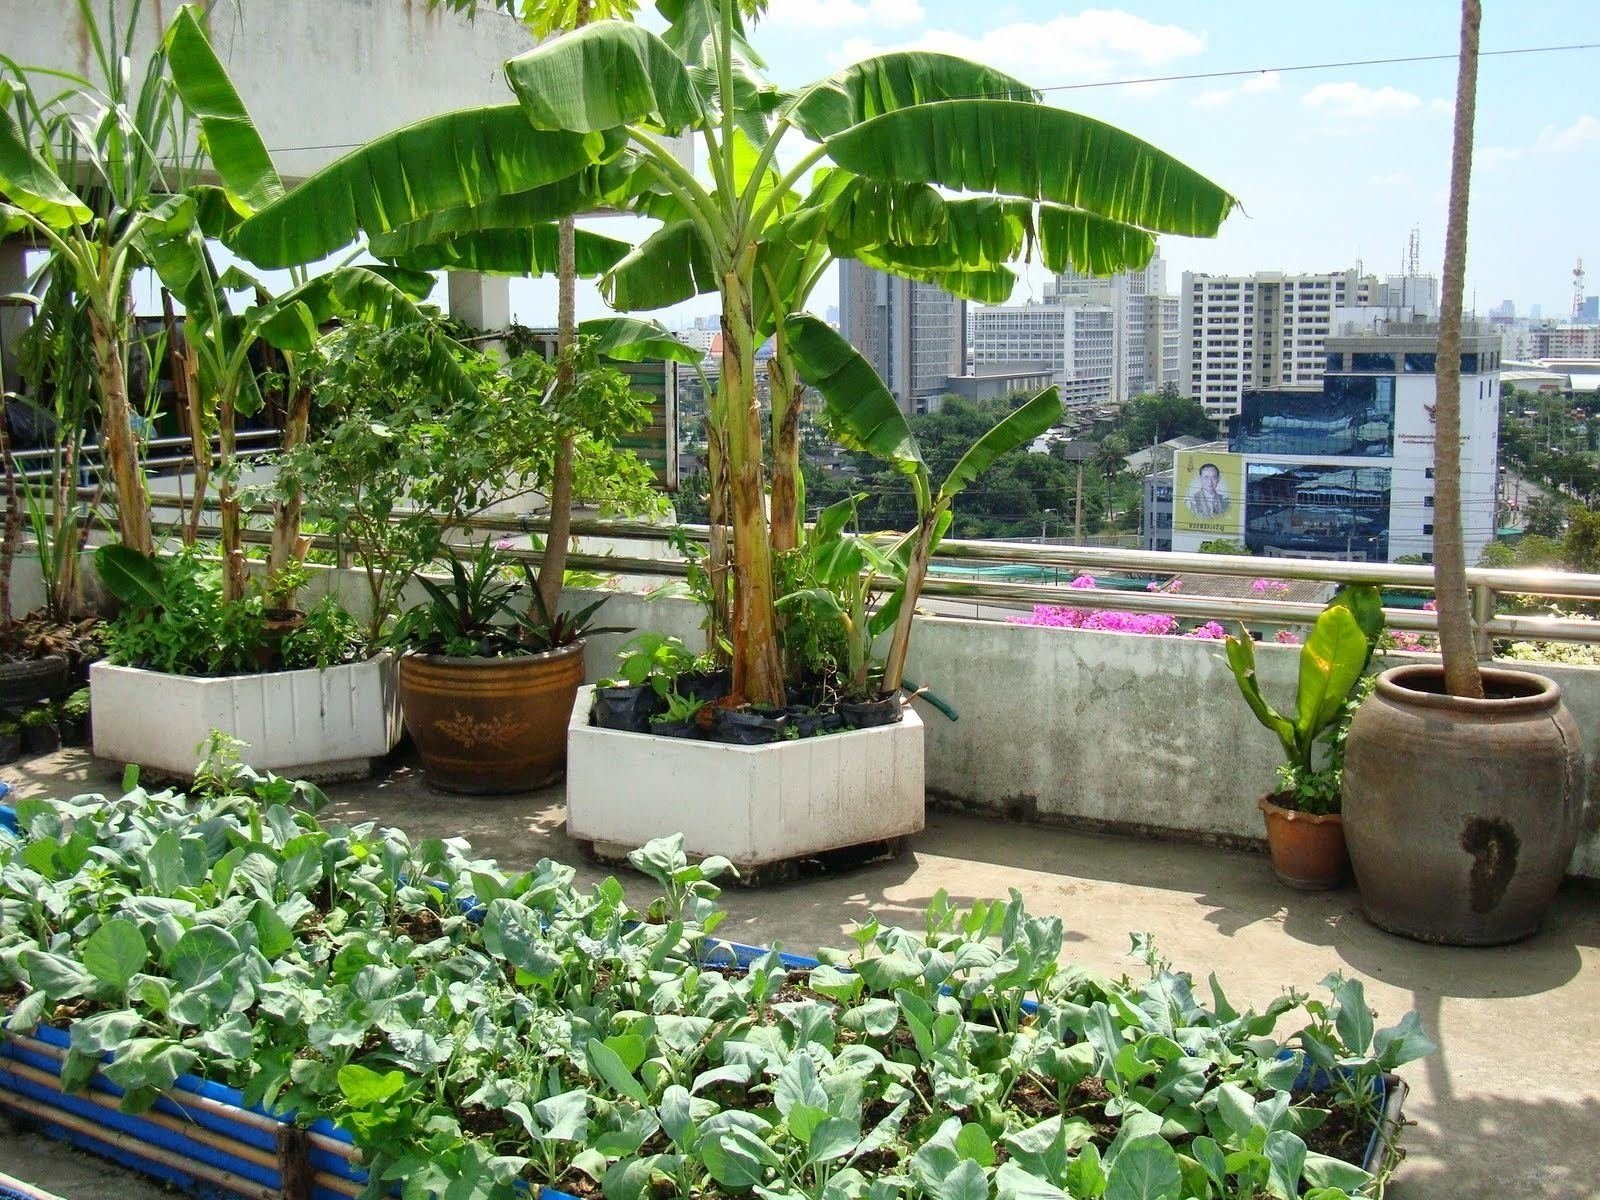 10 Pretty Vegetable Garden Ideas For Small Spaces small patio vegetable garden ideas incredible dimensions ve able 2020